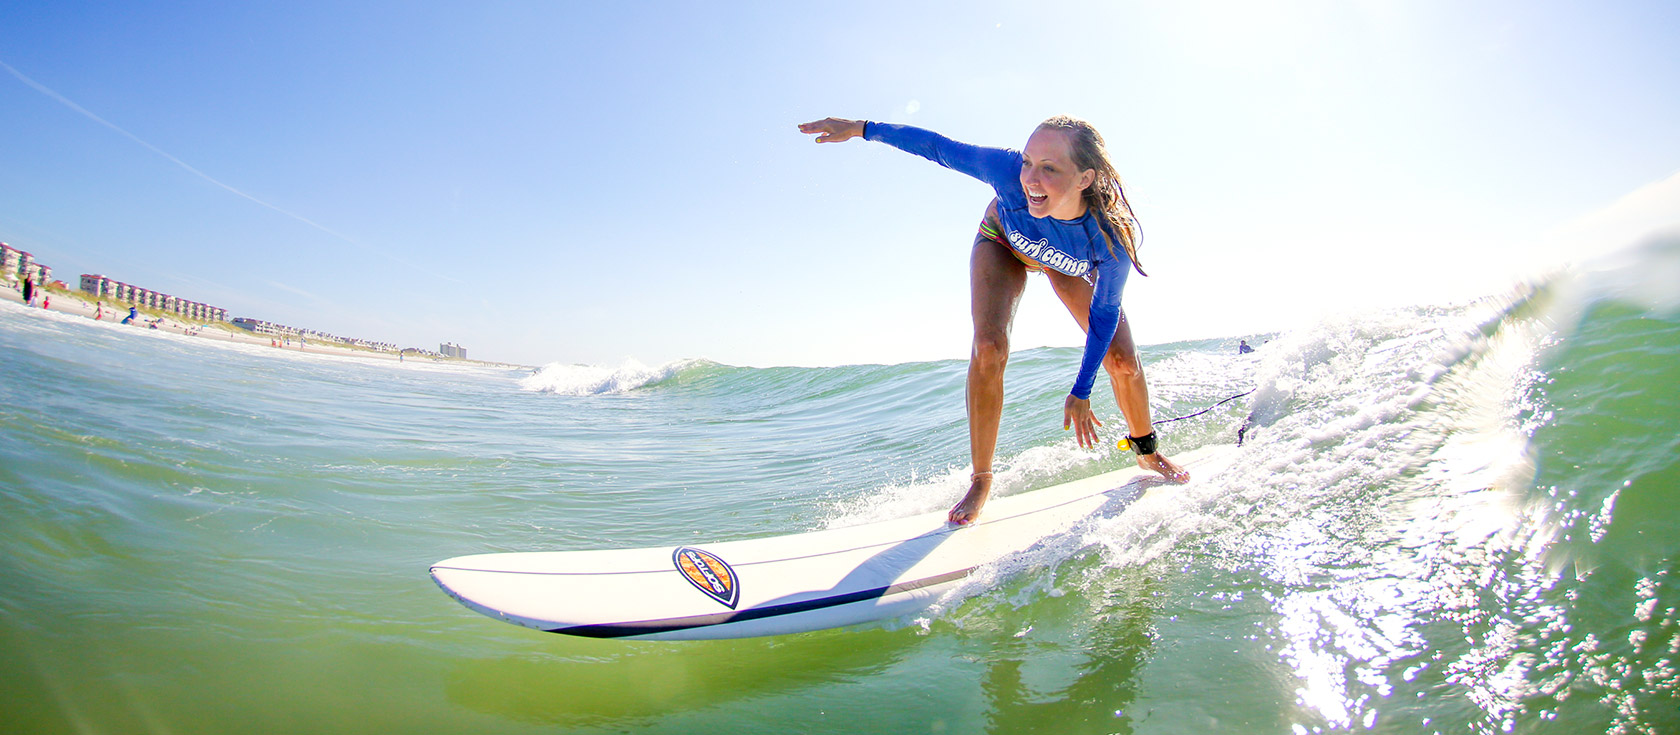 Basic surfcamp (2 hours a day)